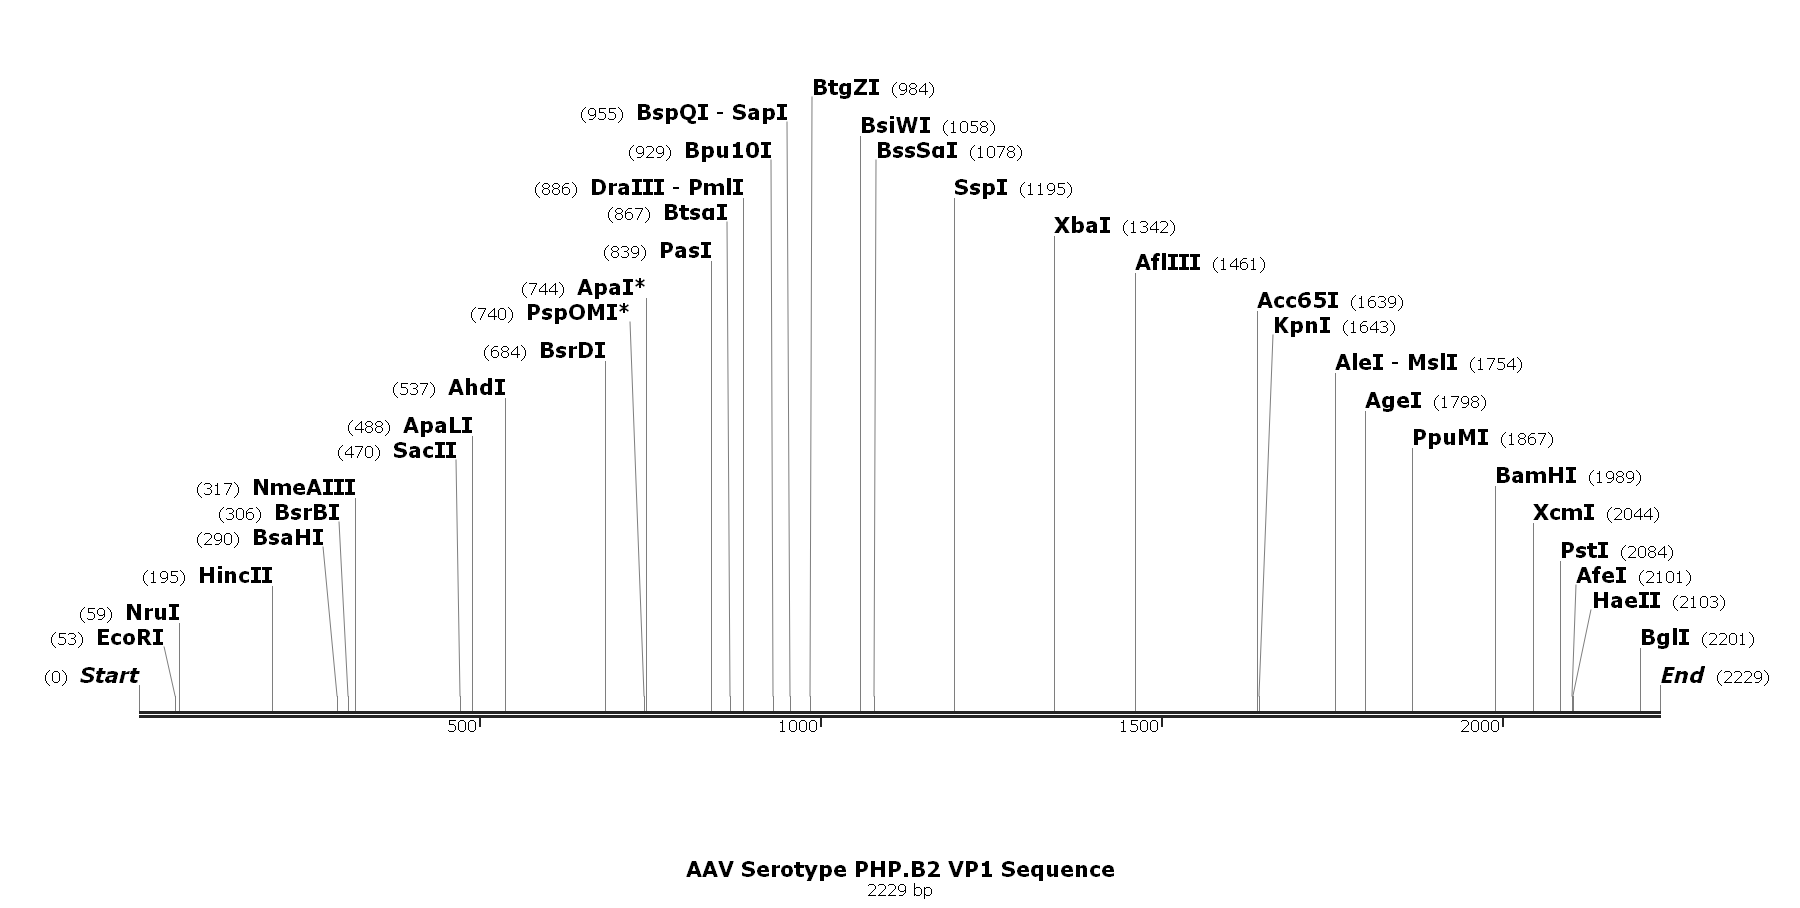 AAV Serotype PHP.B2 VP1 Sequence